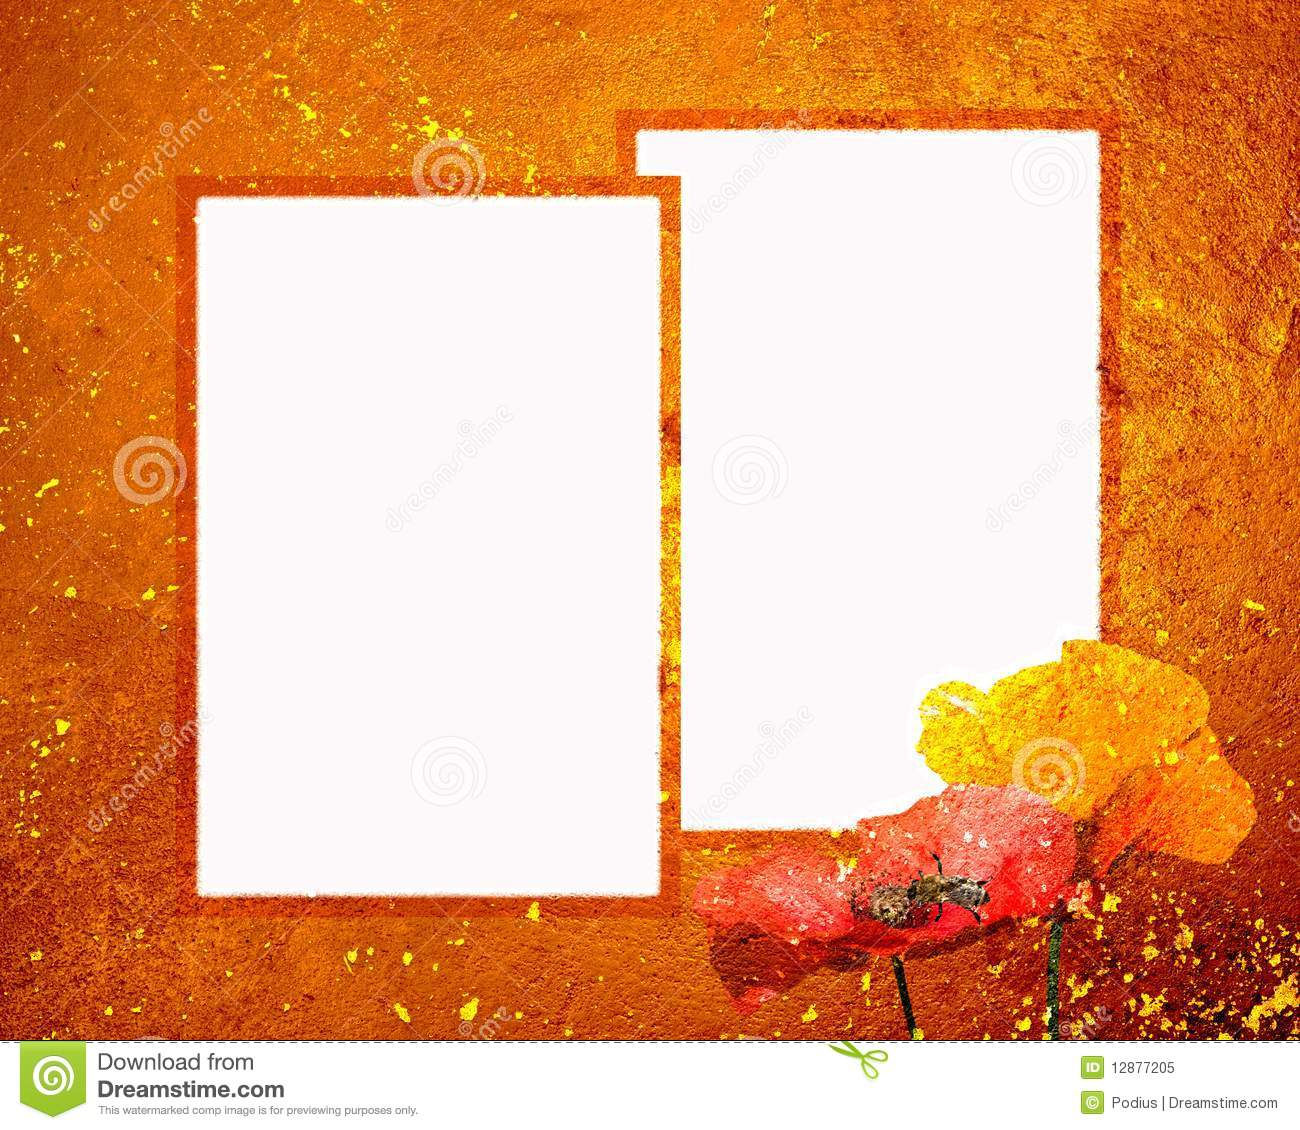 Sunset Frame Two 8x10 Grunge Stock Image - Image of bloom, concept ...